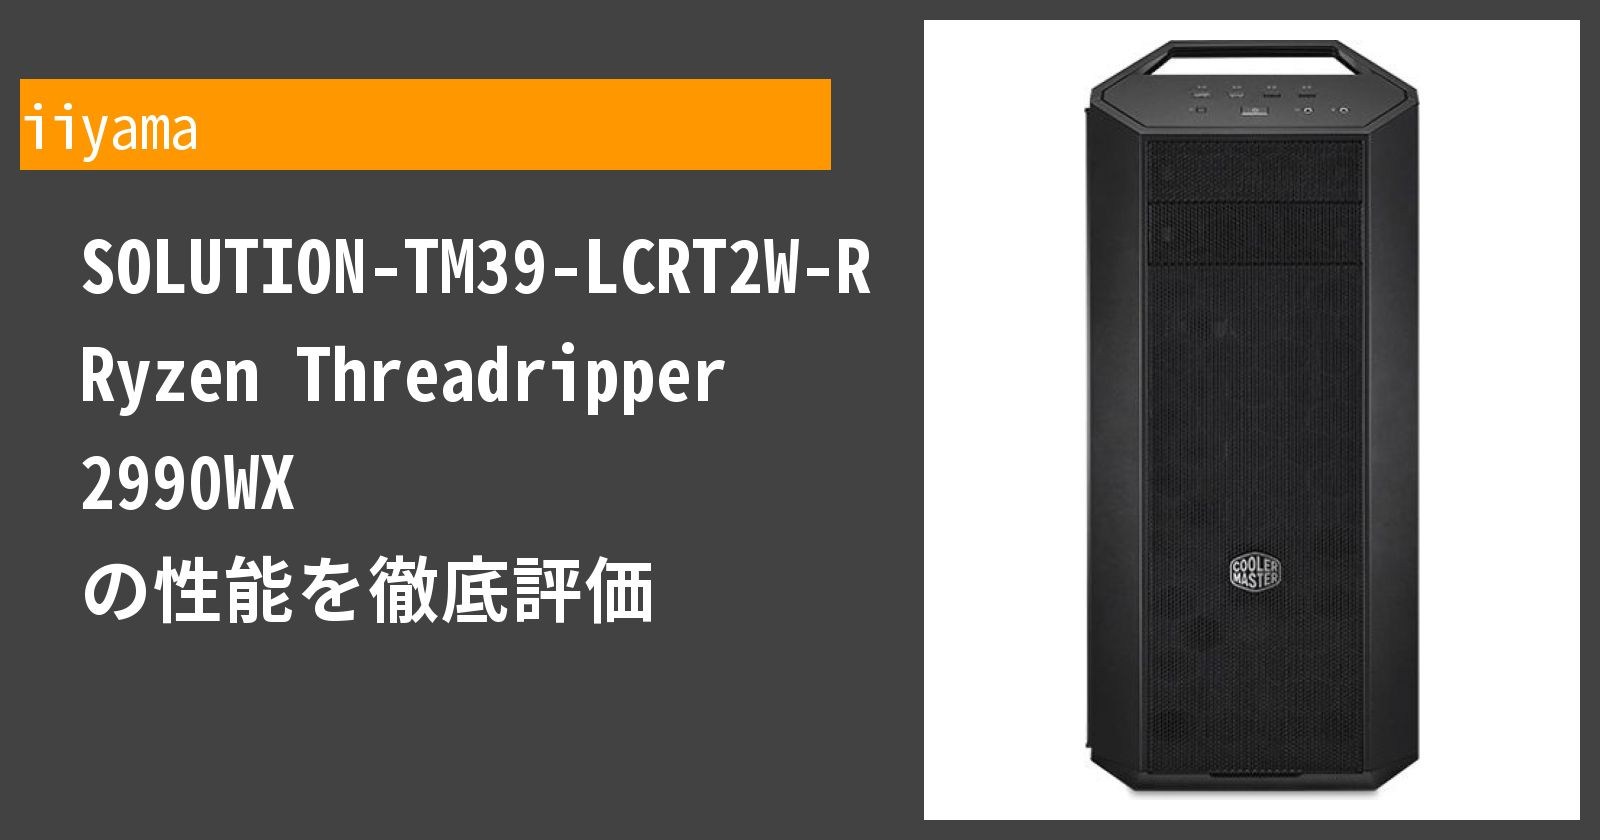 SOLUTION-TM39-LCRT2W-RNJR Ryzen Threadripper 2990WX の性能を徹底評価